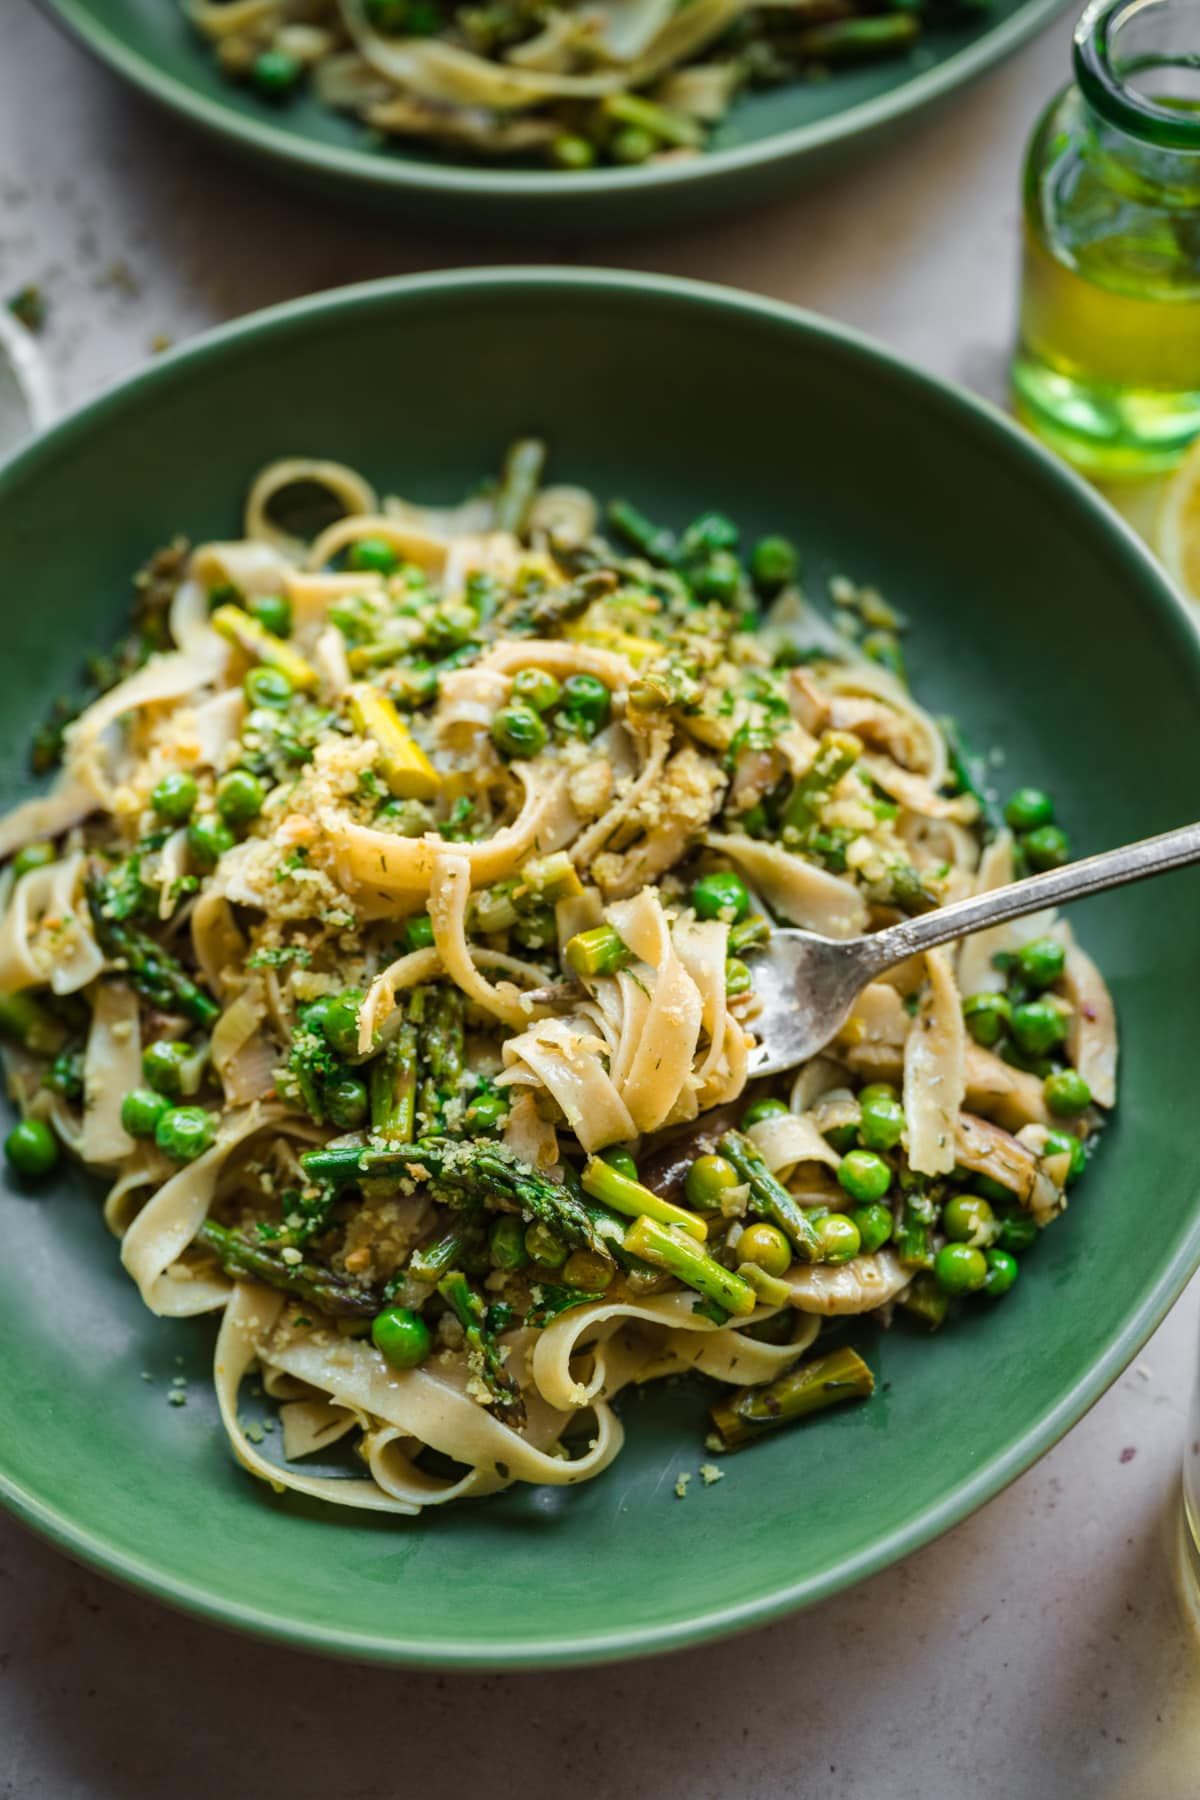 close up view of vegan spring vegetable pasta plated in a green bowl with breadcrumb topping.